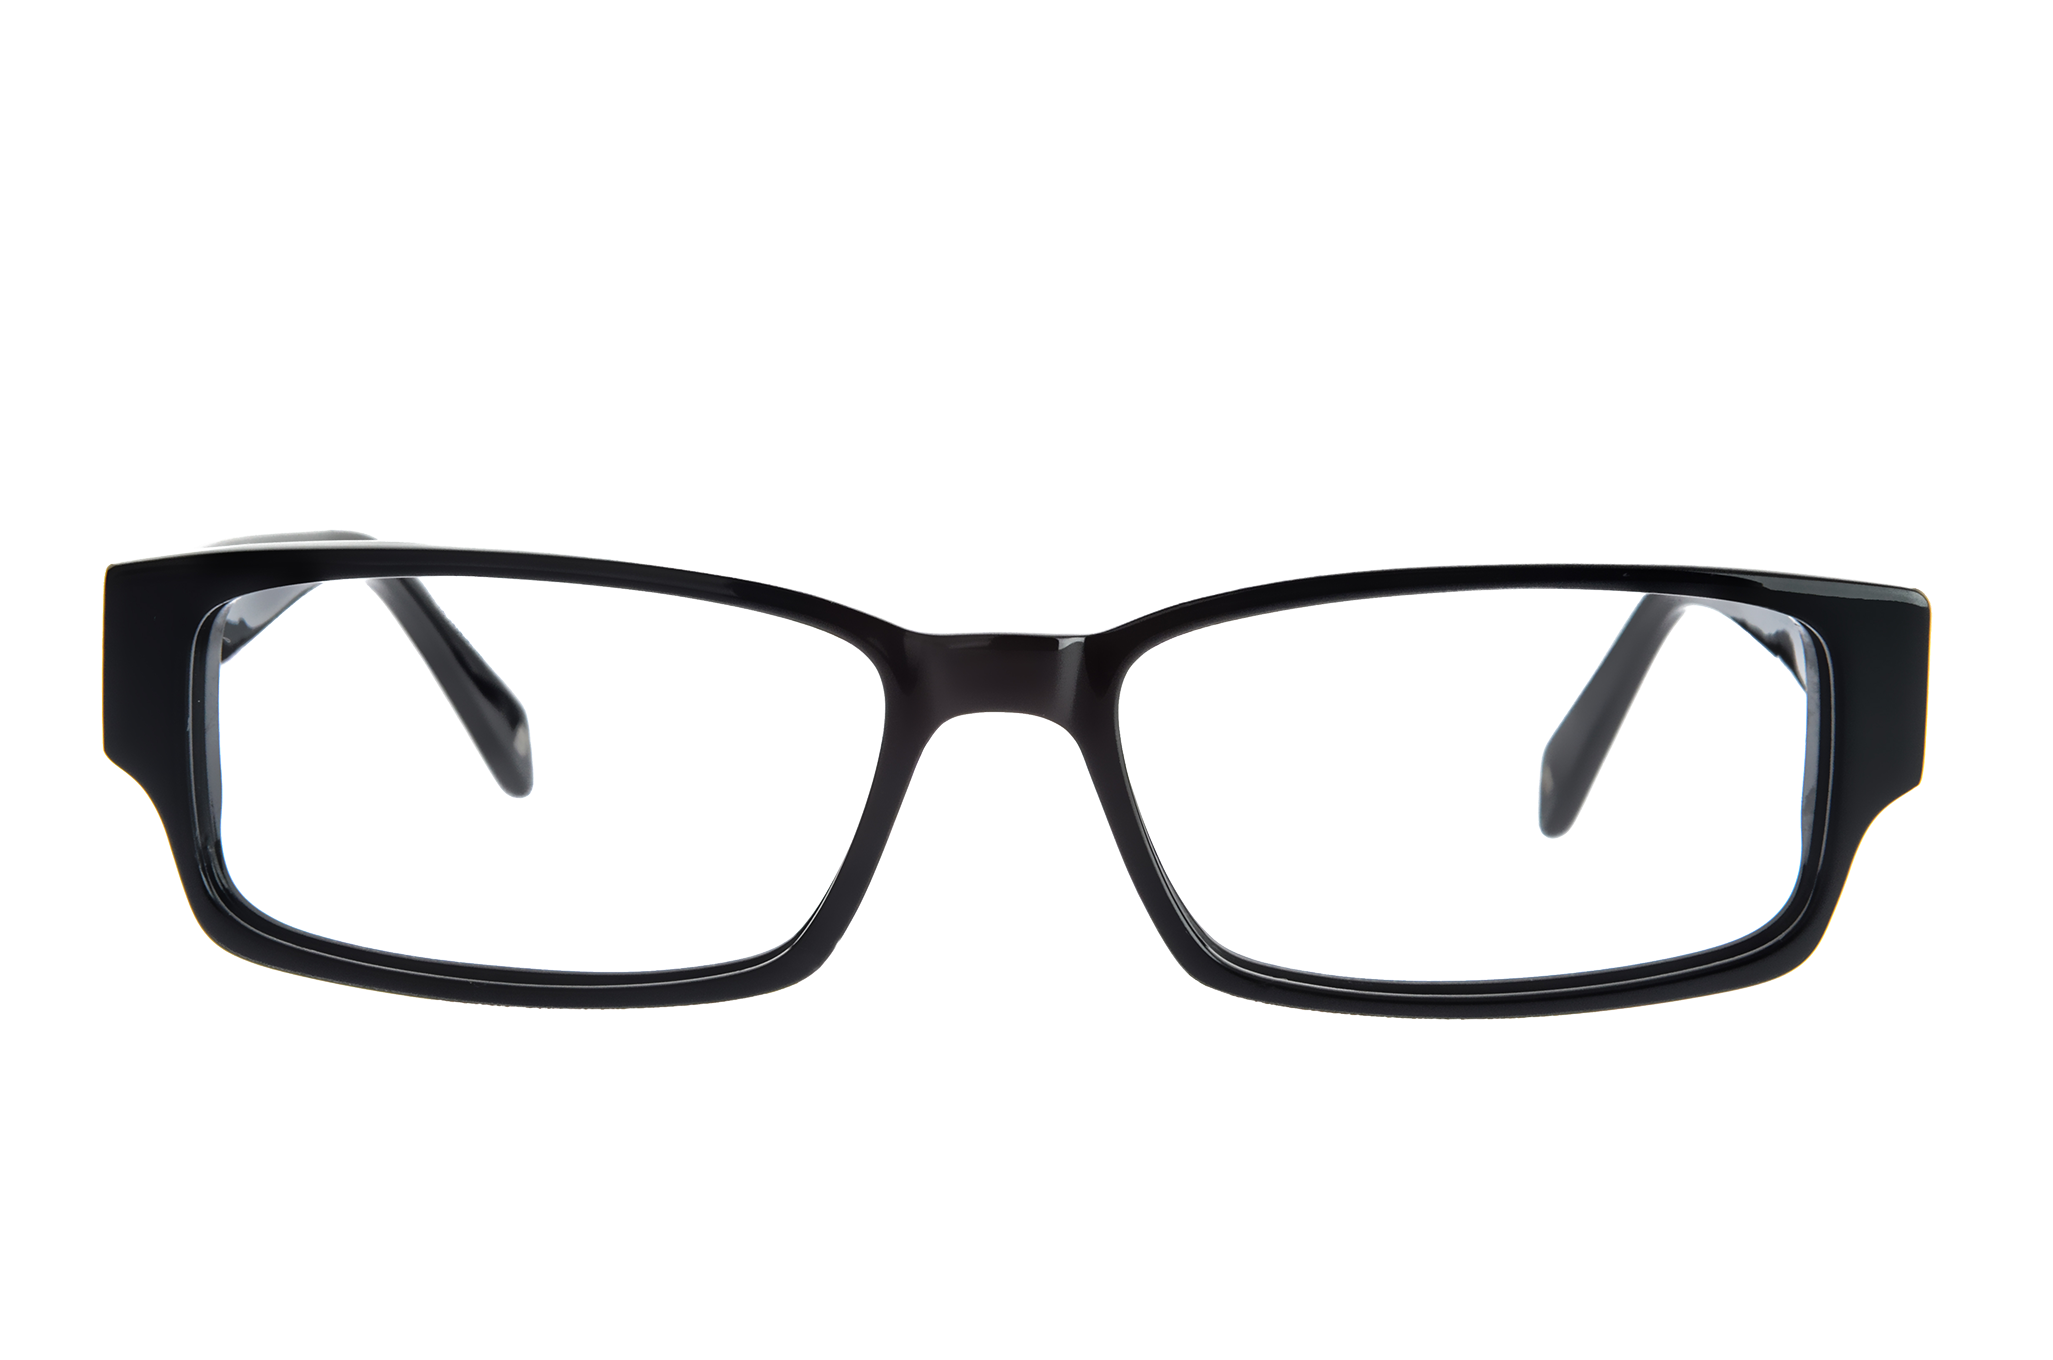 Mlg Glasses Png ,HD PNG . (+) Pictures - vhv.rs